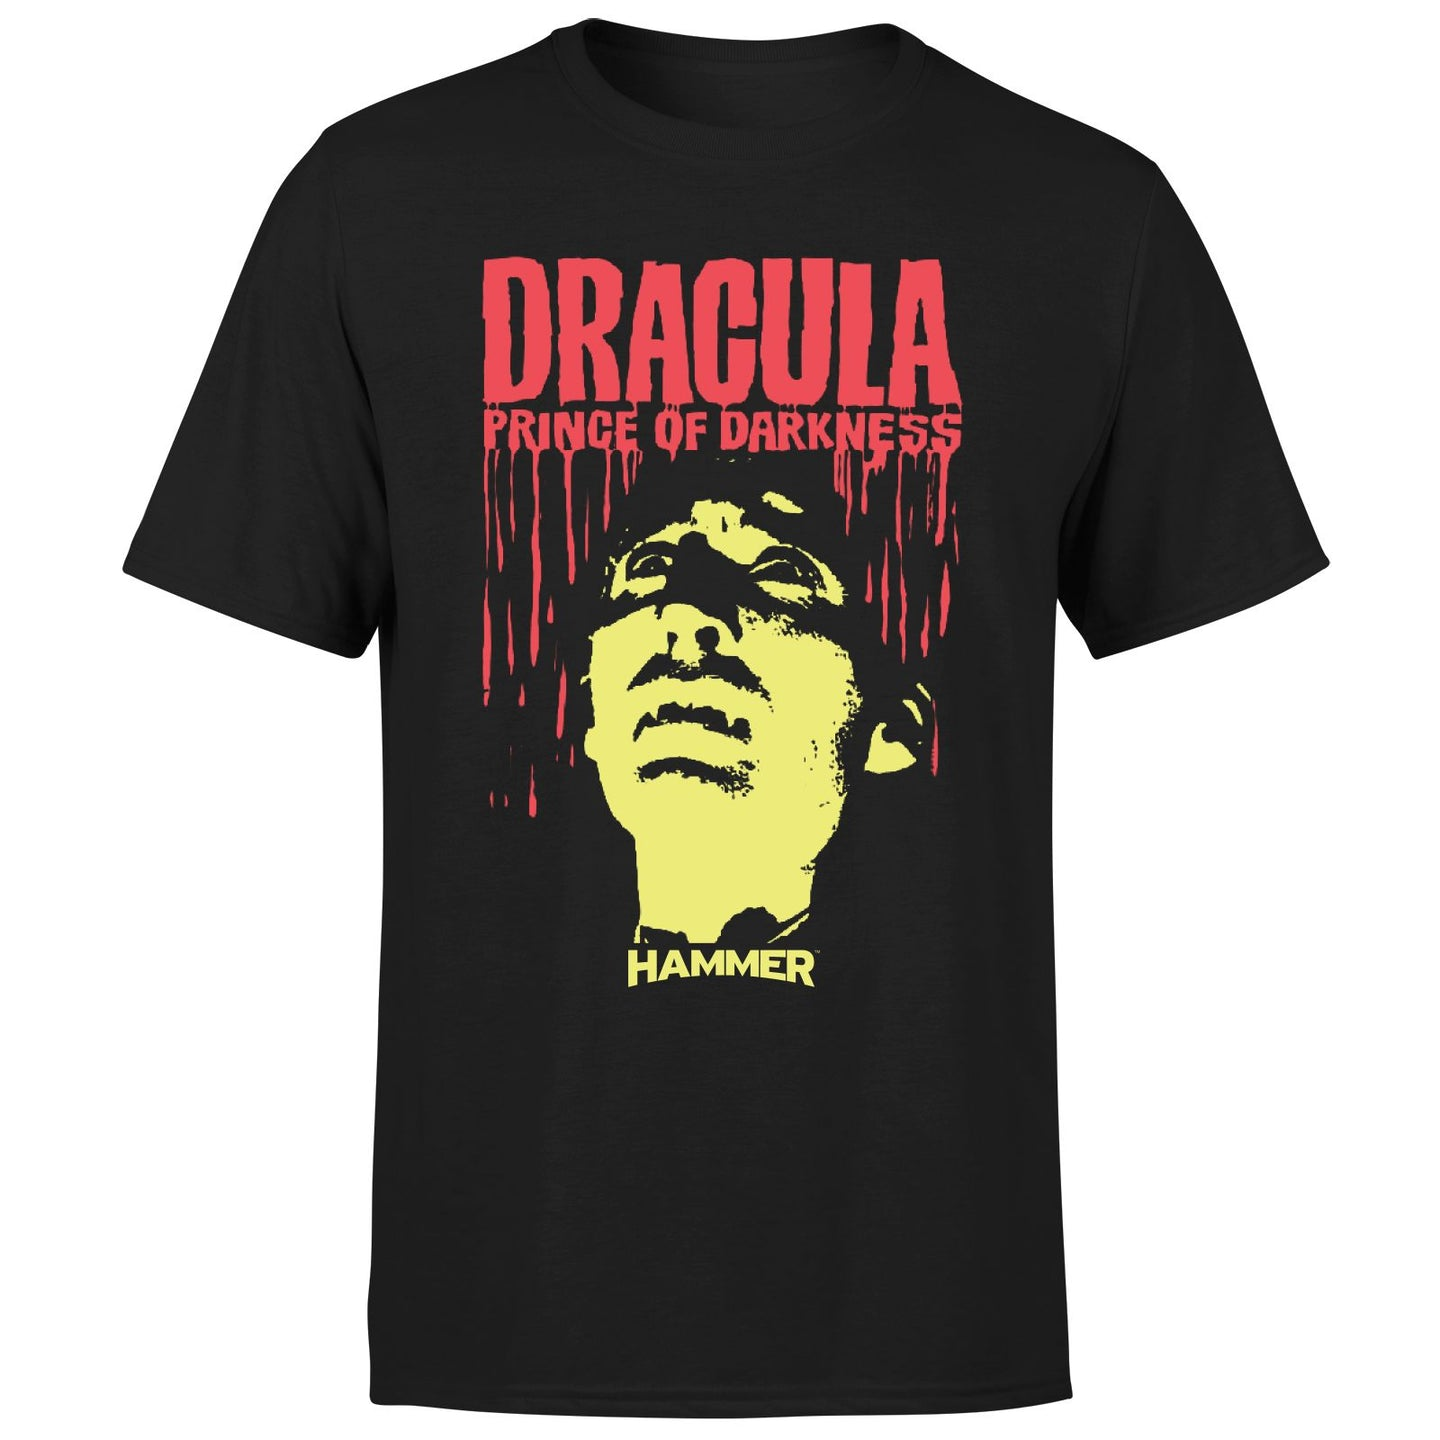 Dracula Prince Of darkness dripping logo Black tee